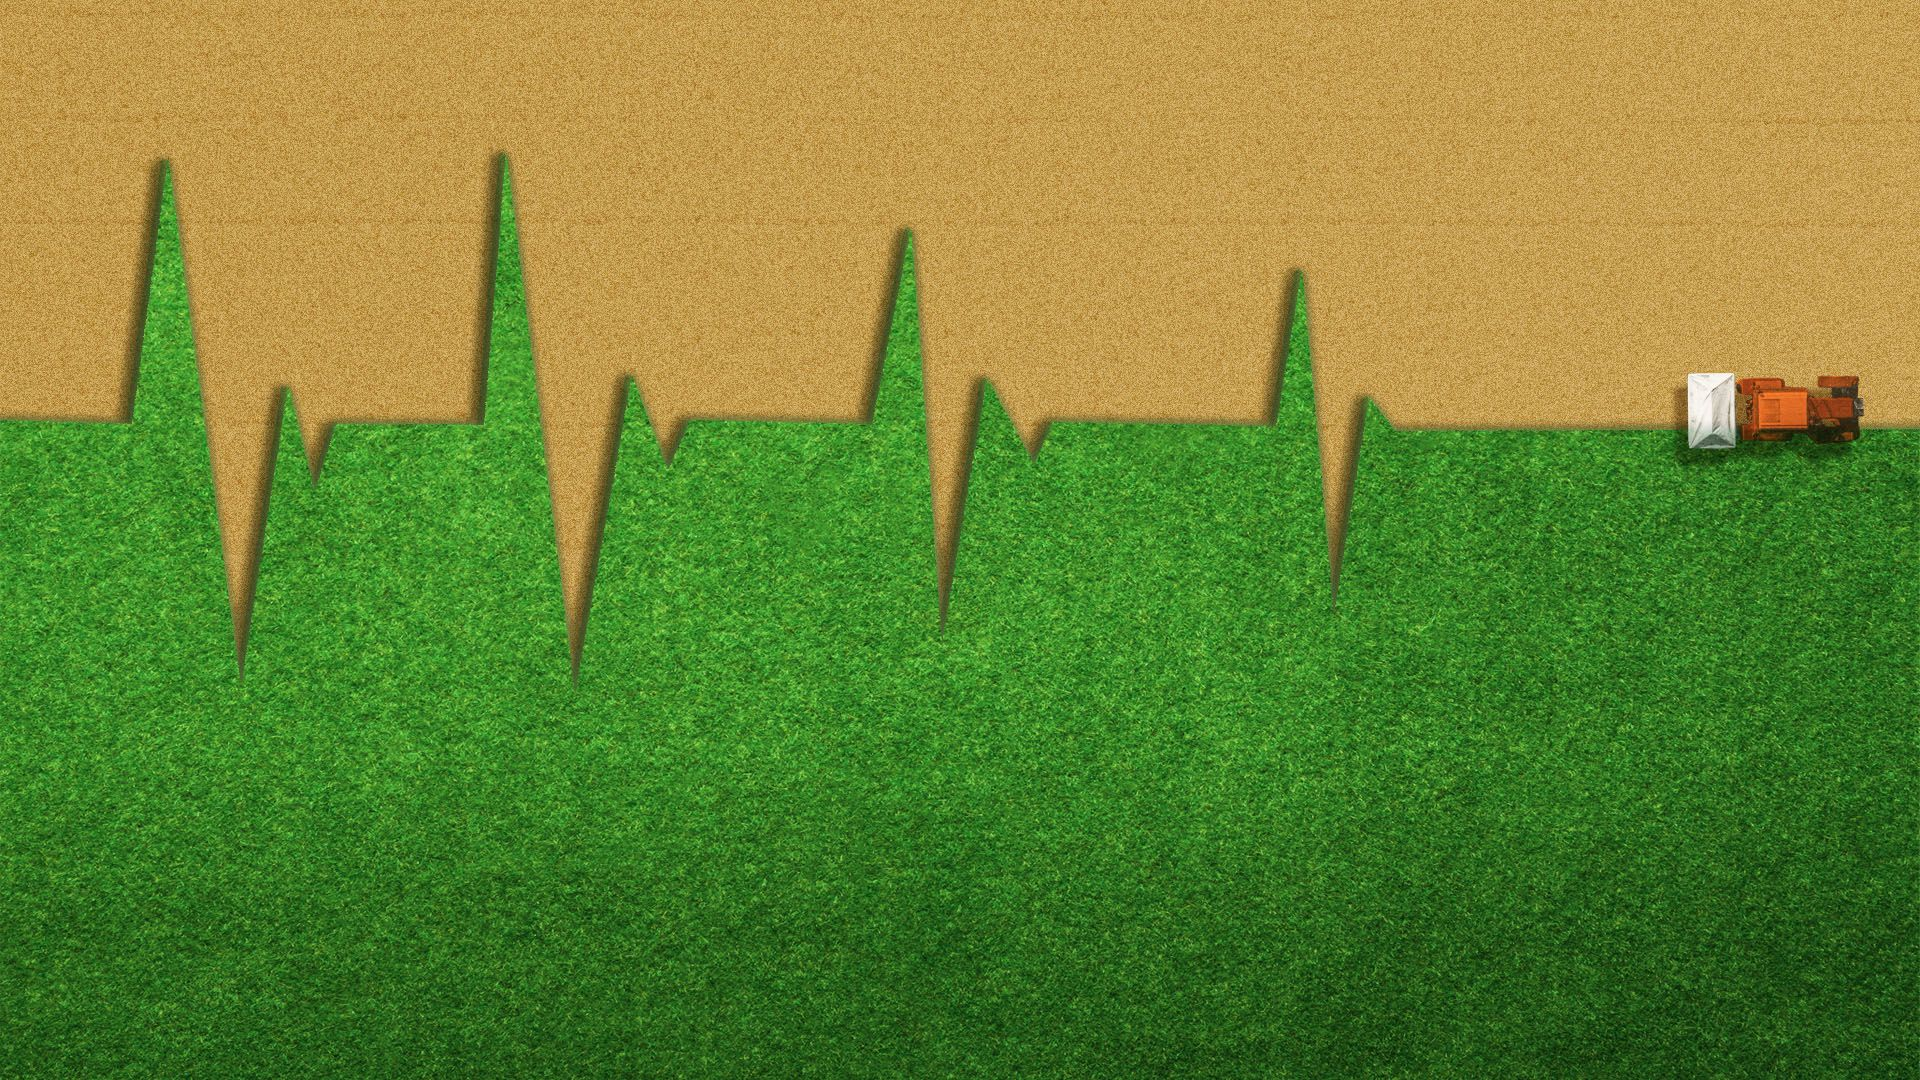 Illustration of a tractor plowing a field in the shape of a heart monitor that is petering out